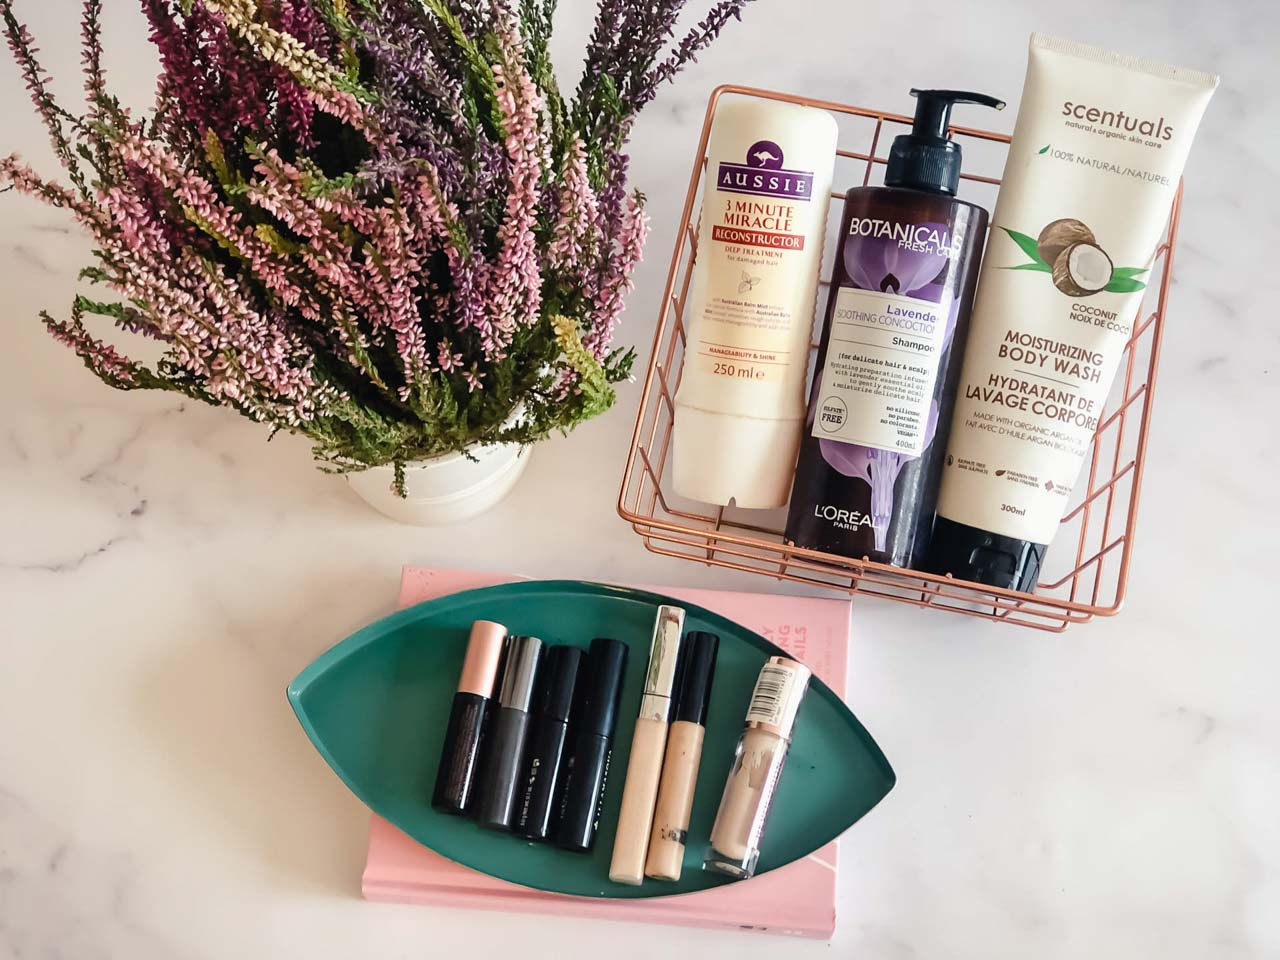 Makeup, skincare, hair and bath products displayed on a marble desk next to a heather plant